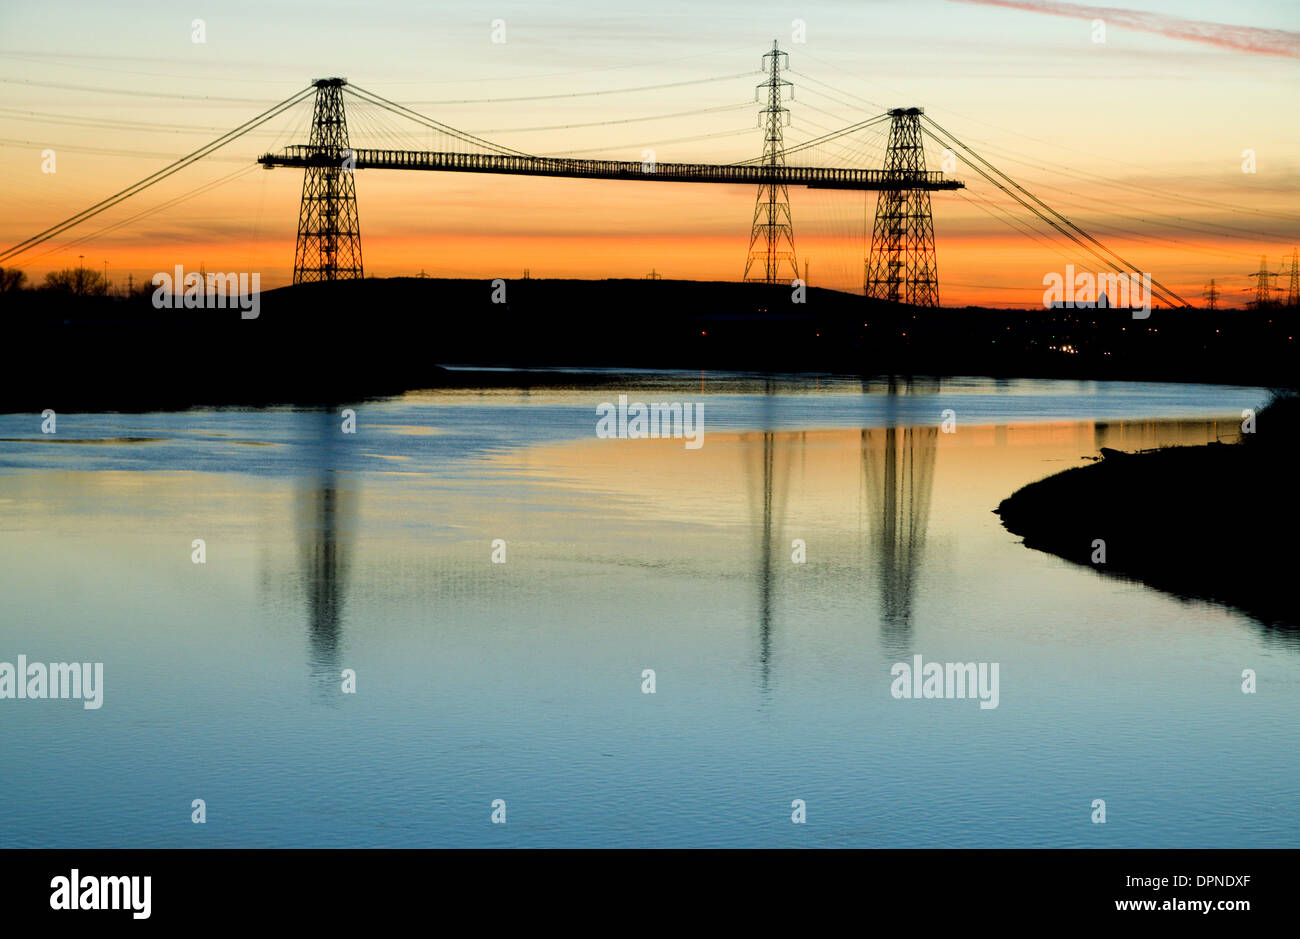 Newport Transporter Bridge at sunset, built in 1906 and spanning the River Usk , Newport, Gwent, South Wales. - Stock Image